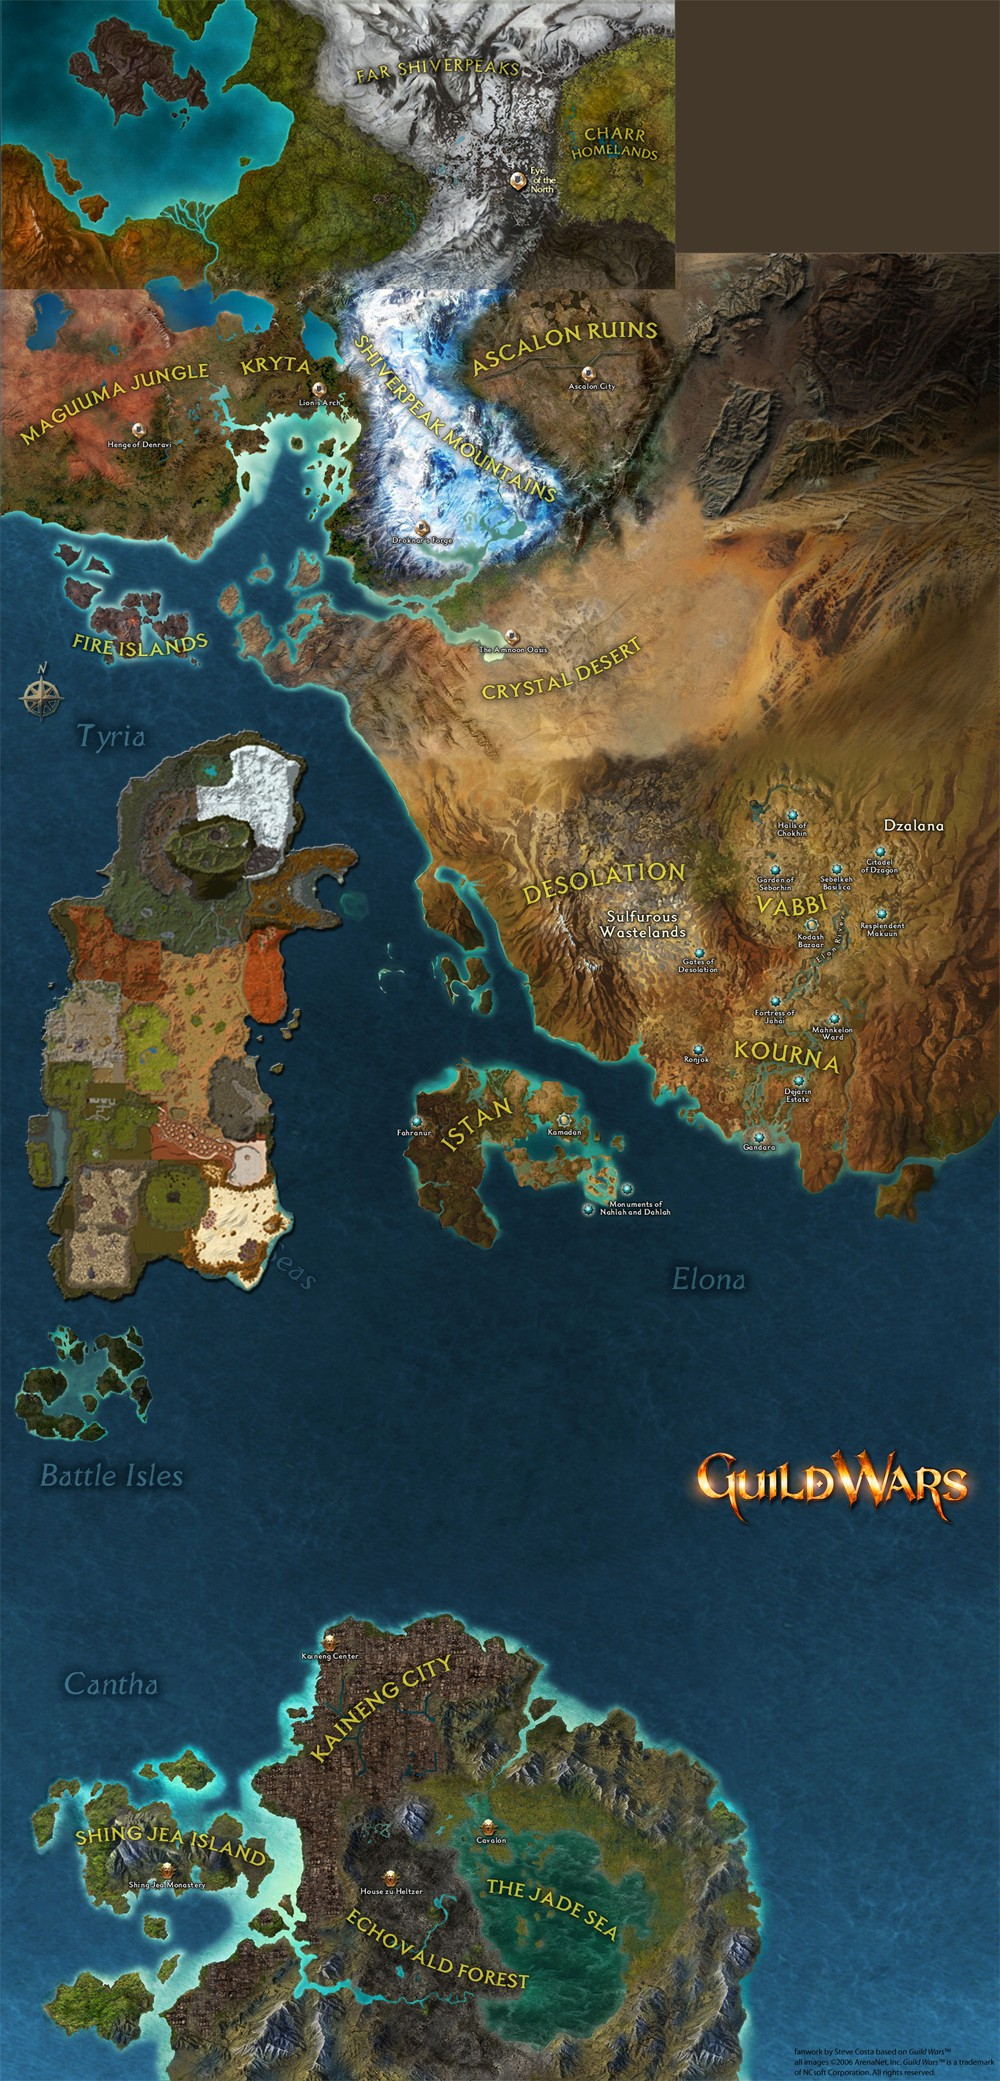 Guild Wars, the known world